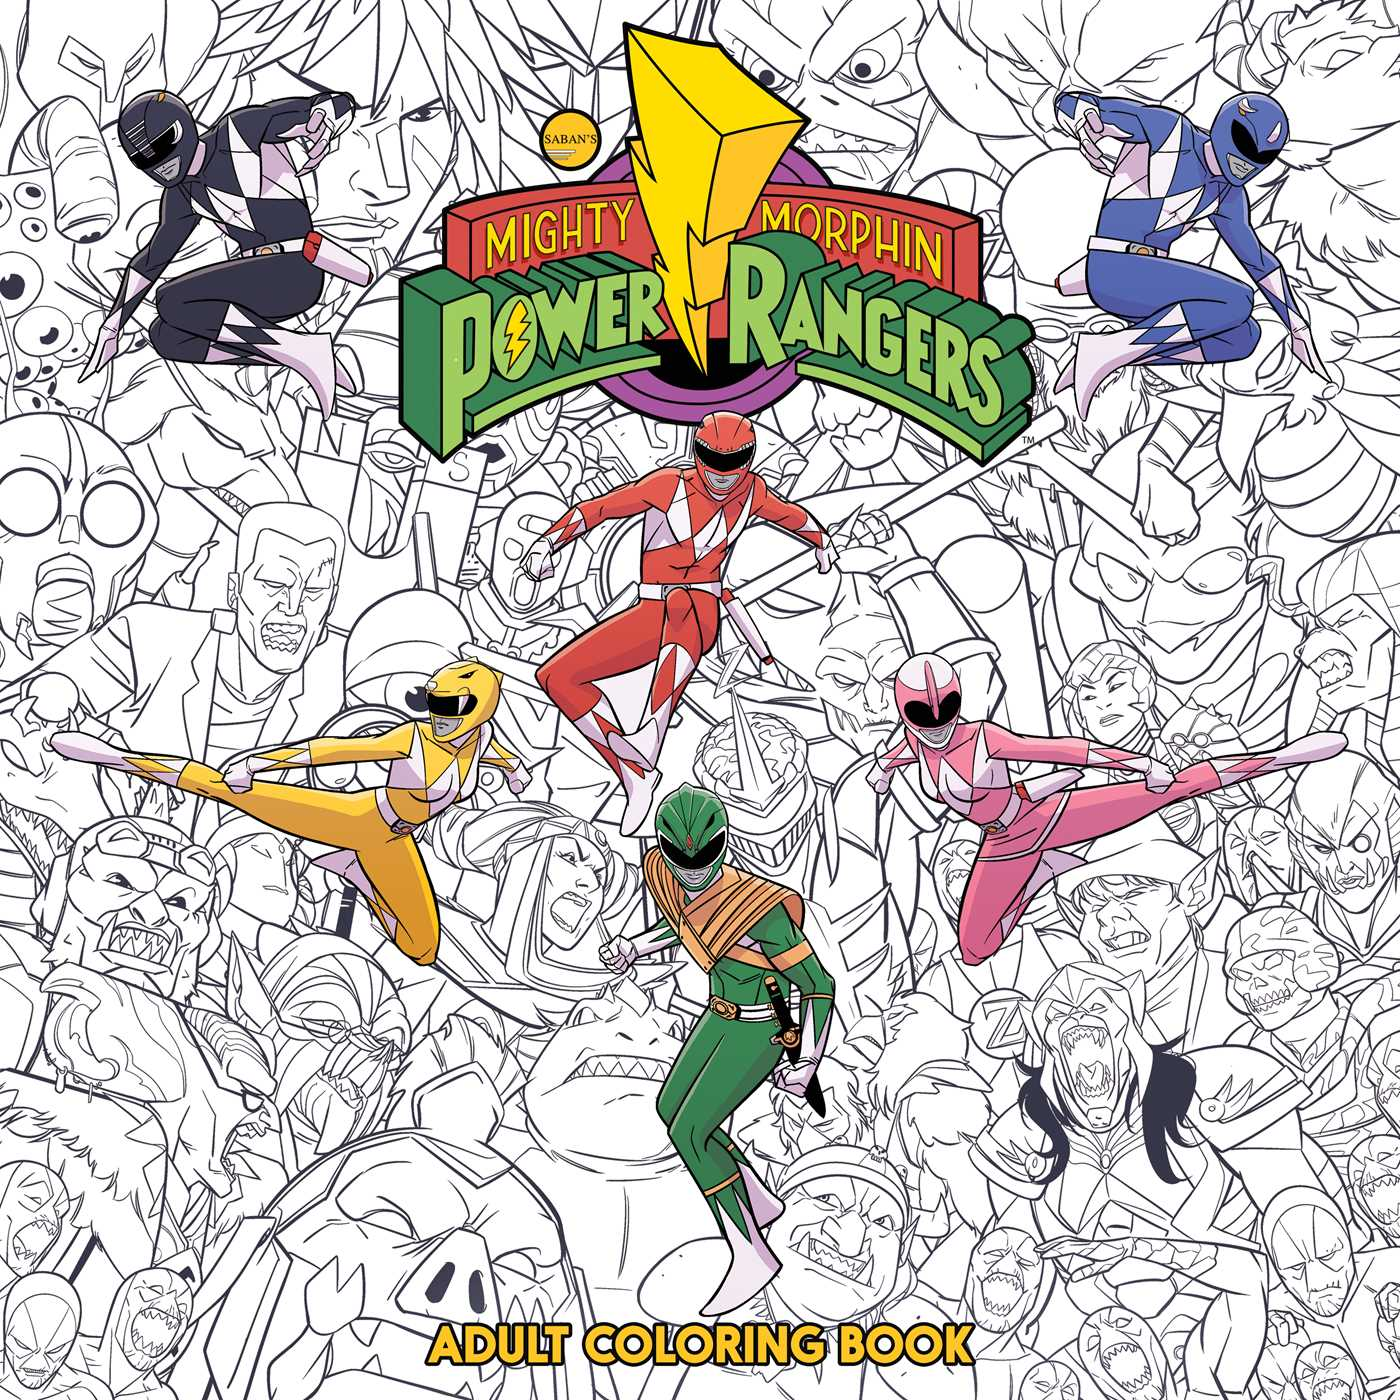 Book Cover Image Jpg Mighty Morphin Power Rangers Adult Coloring